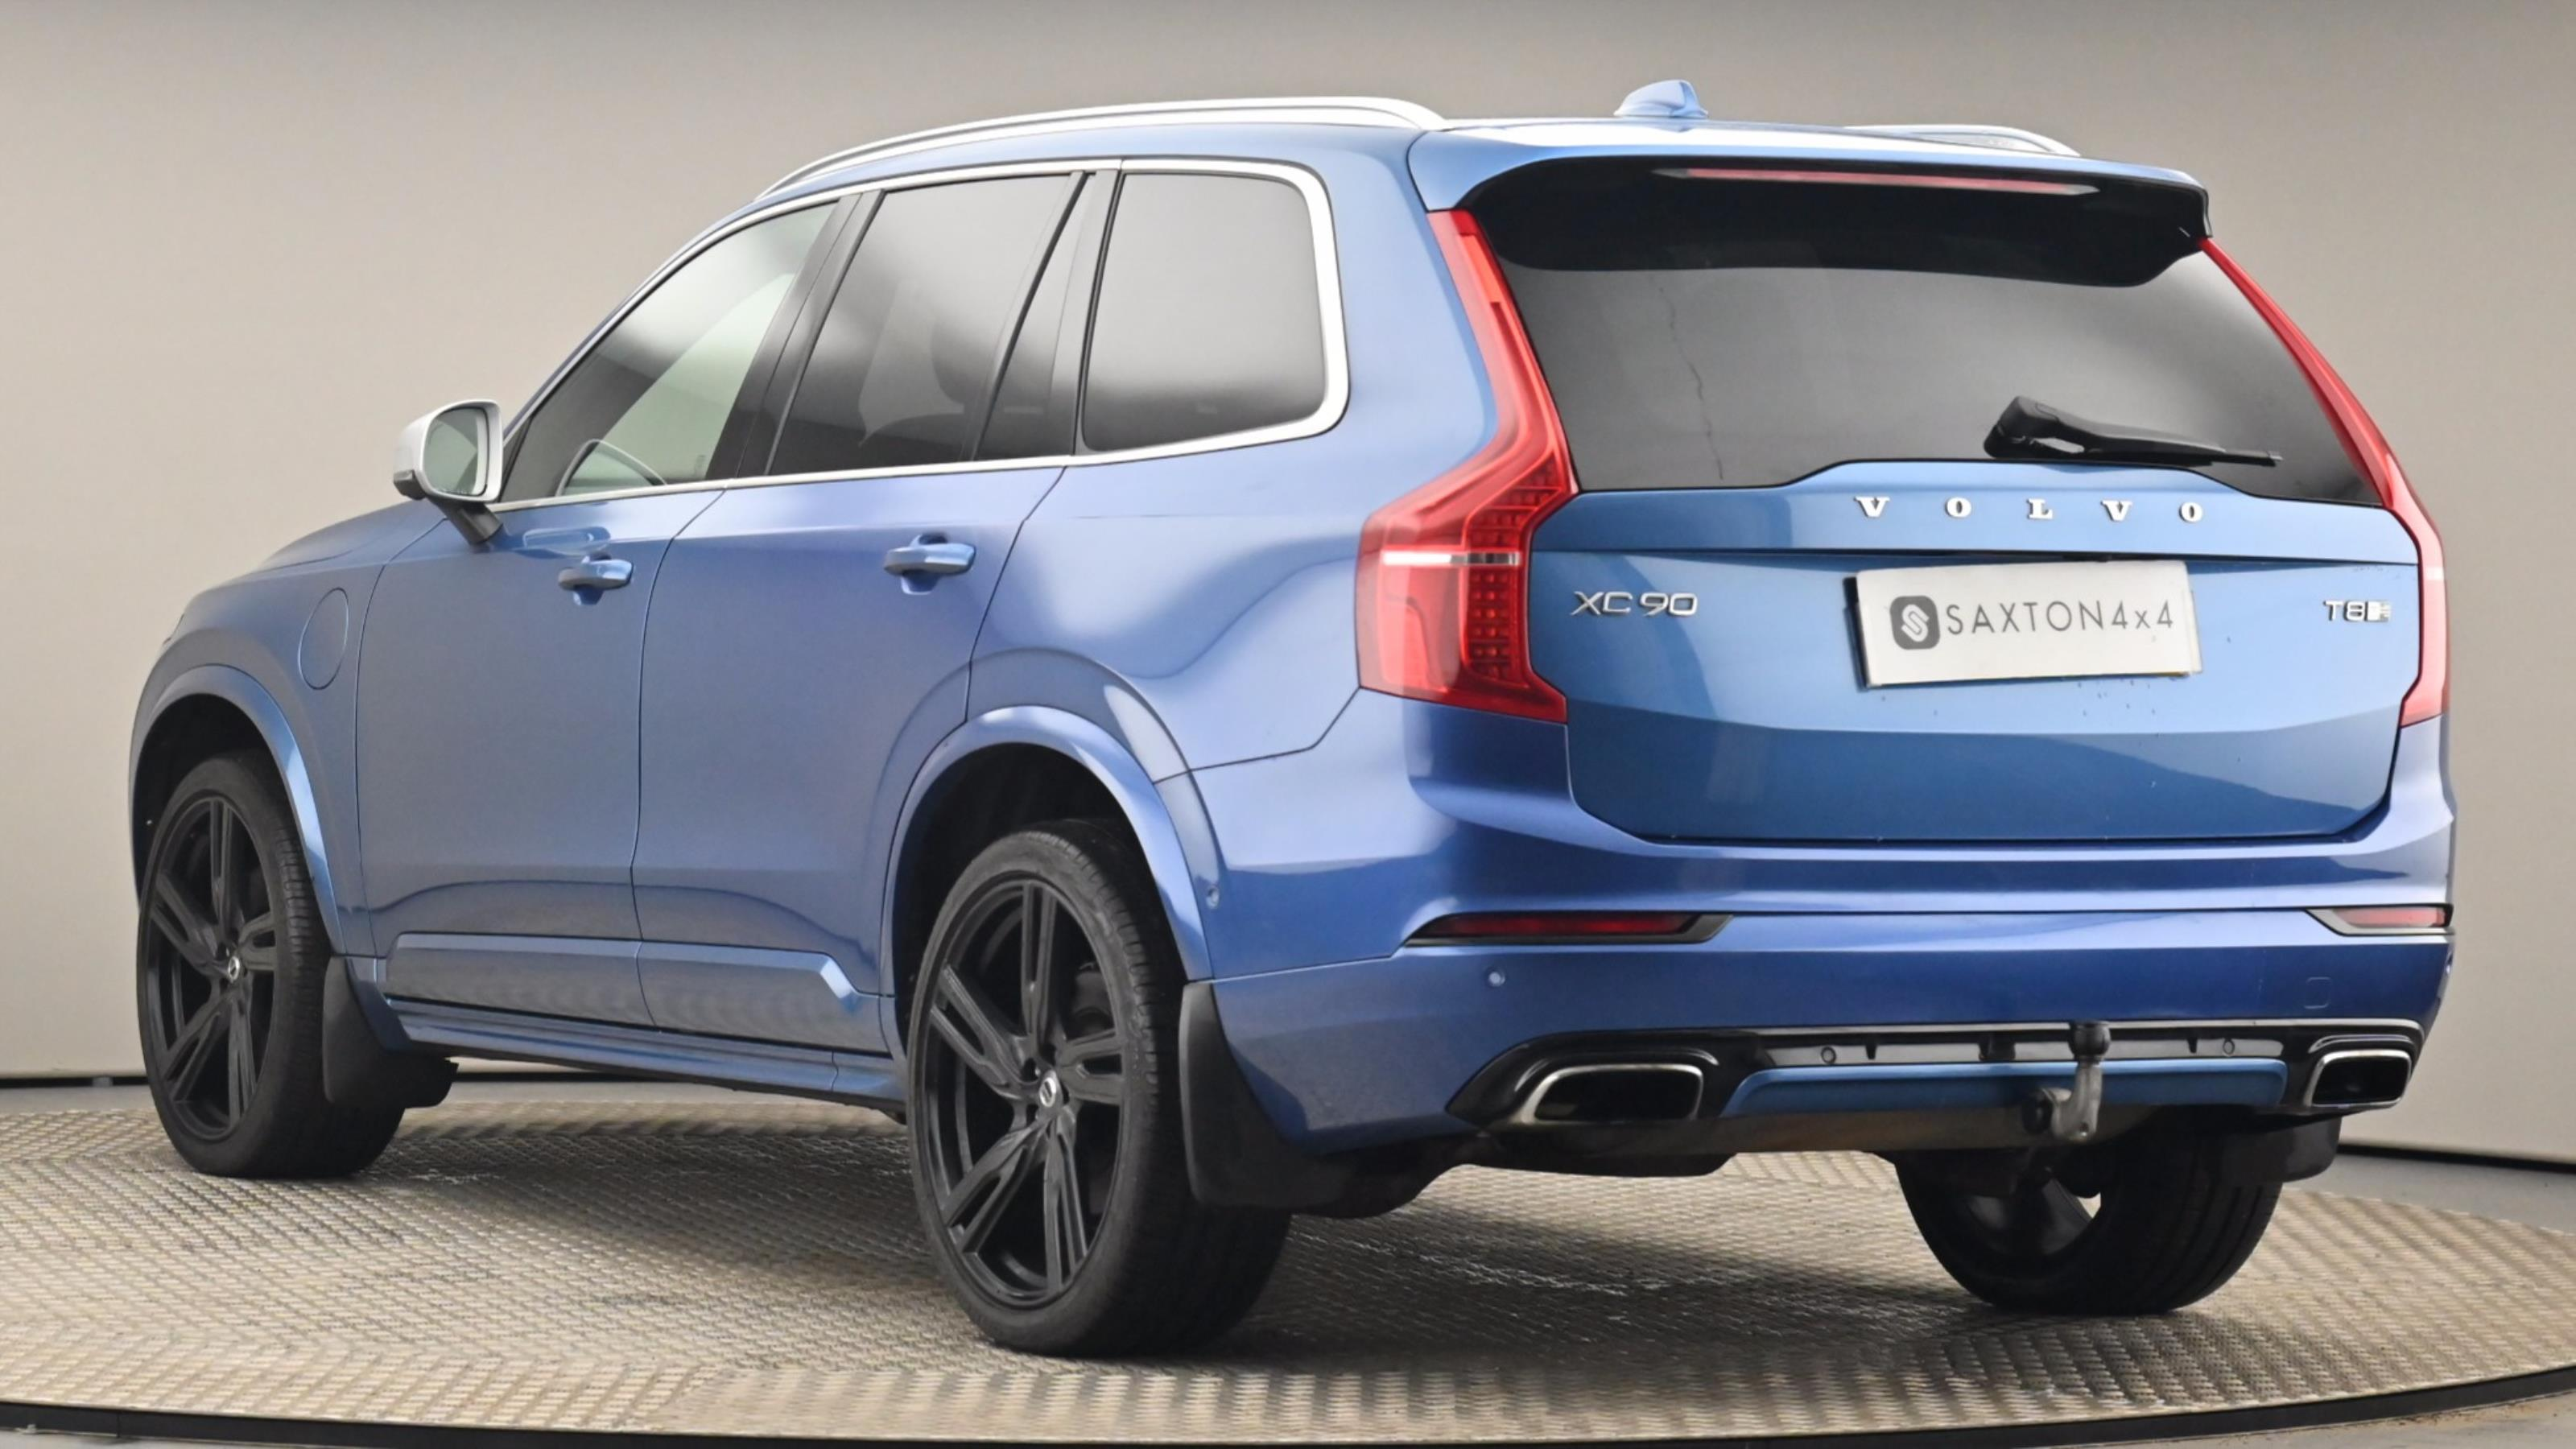 Used 2017 Volvo XC90 2.0 T8 Hybrid R DESIGN 5dr Geartronic BLUE at Saxton4x4